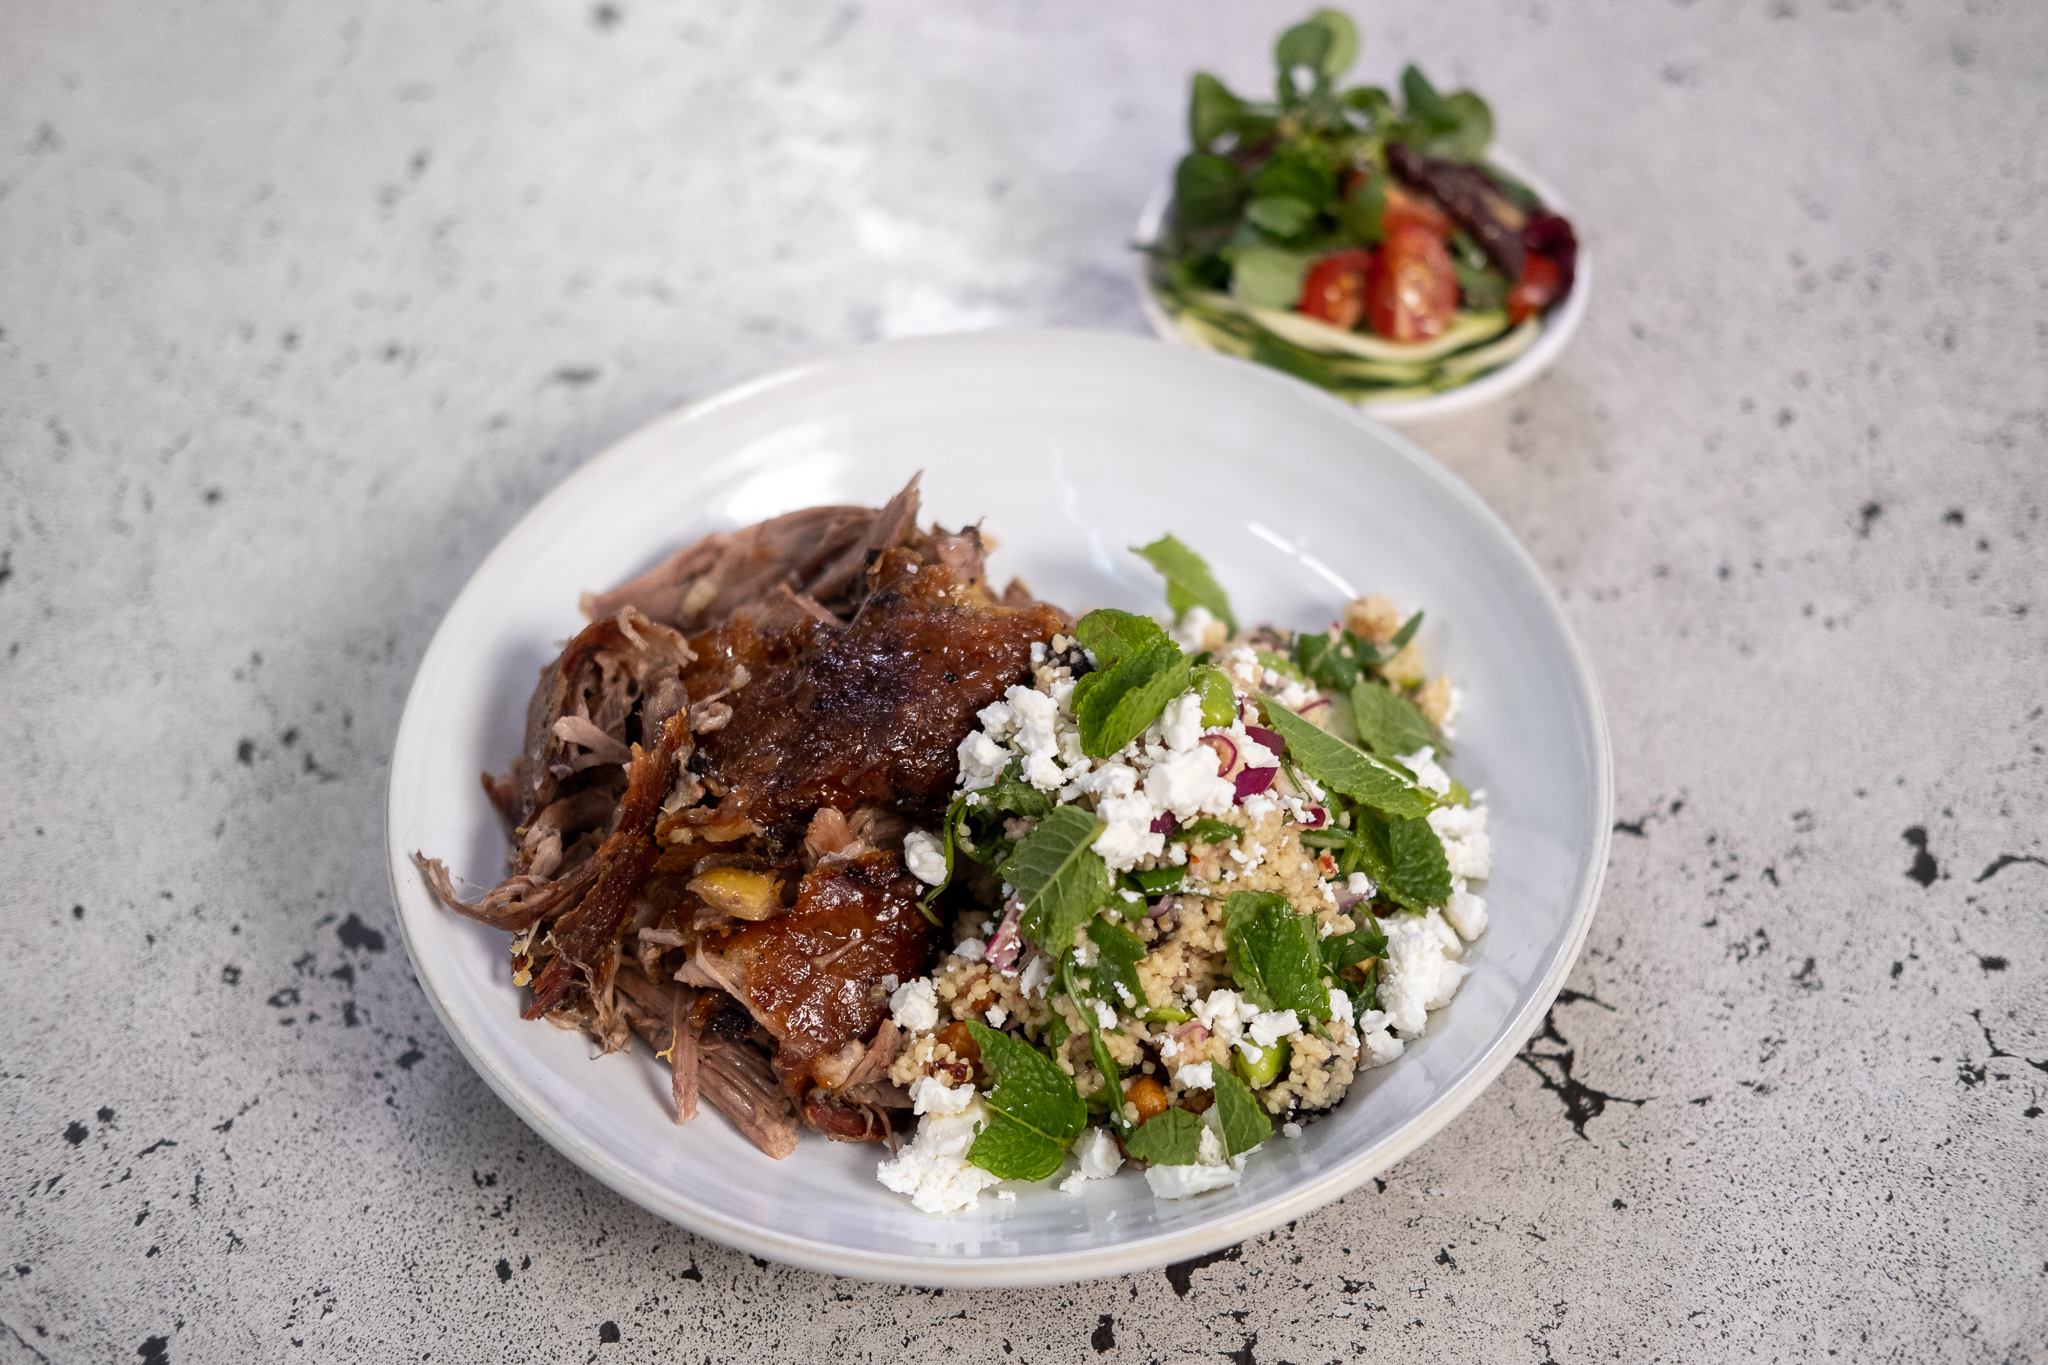 Mark's Slow Roast Lamb Shoulder, Dressed Couscous and Broad Bean Salad